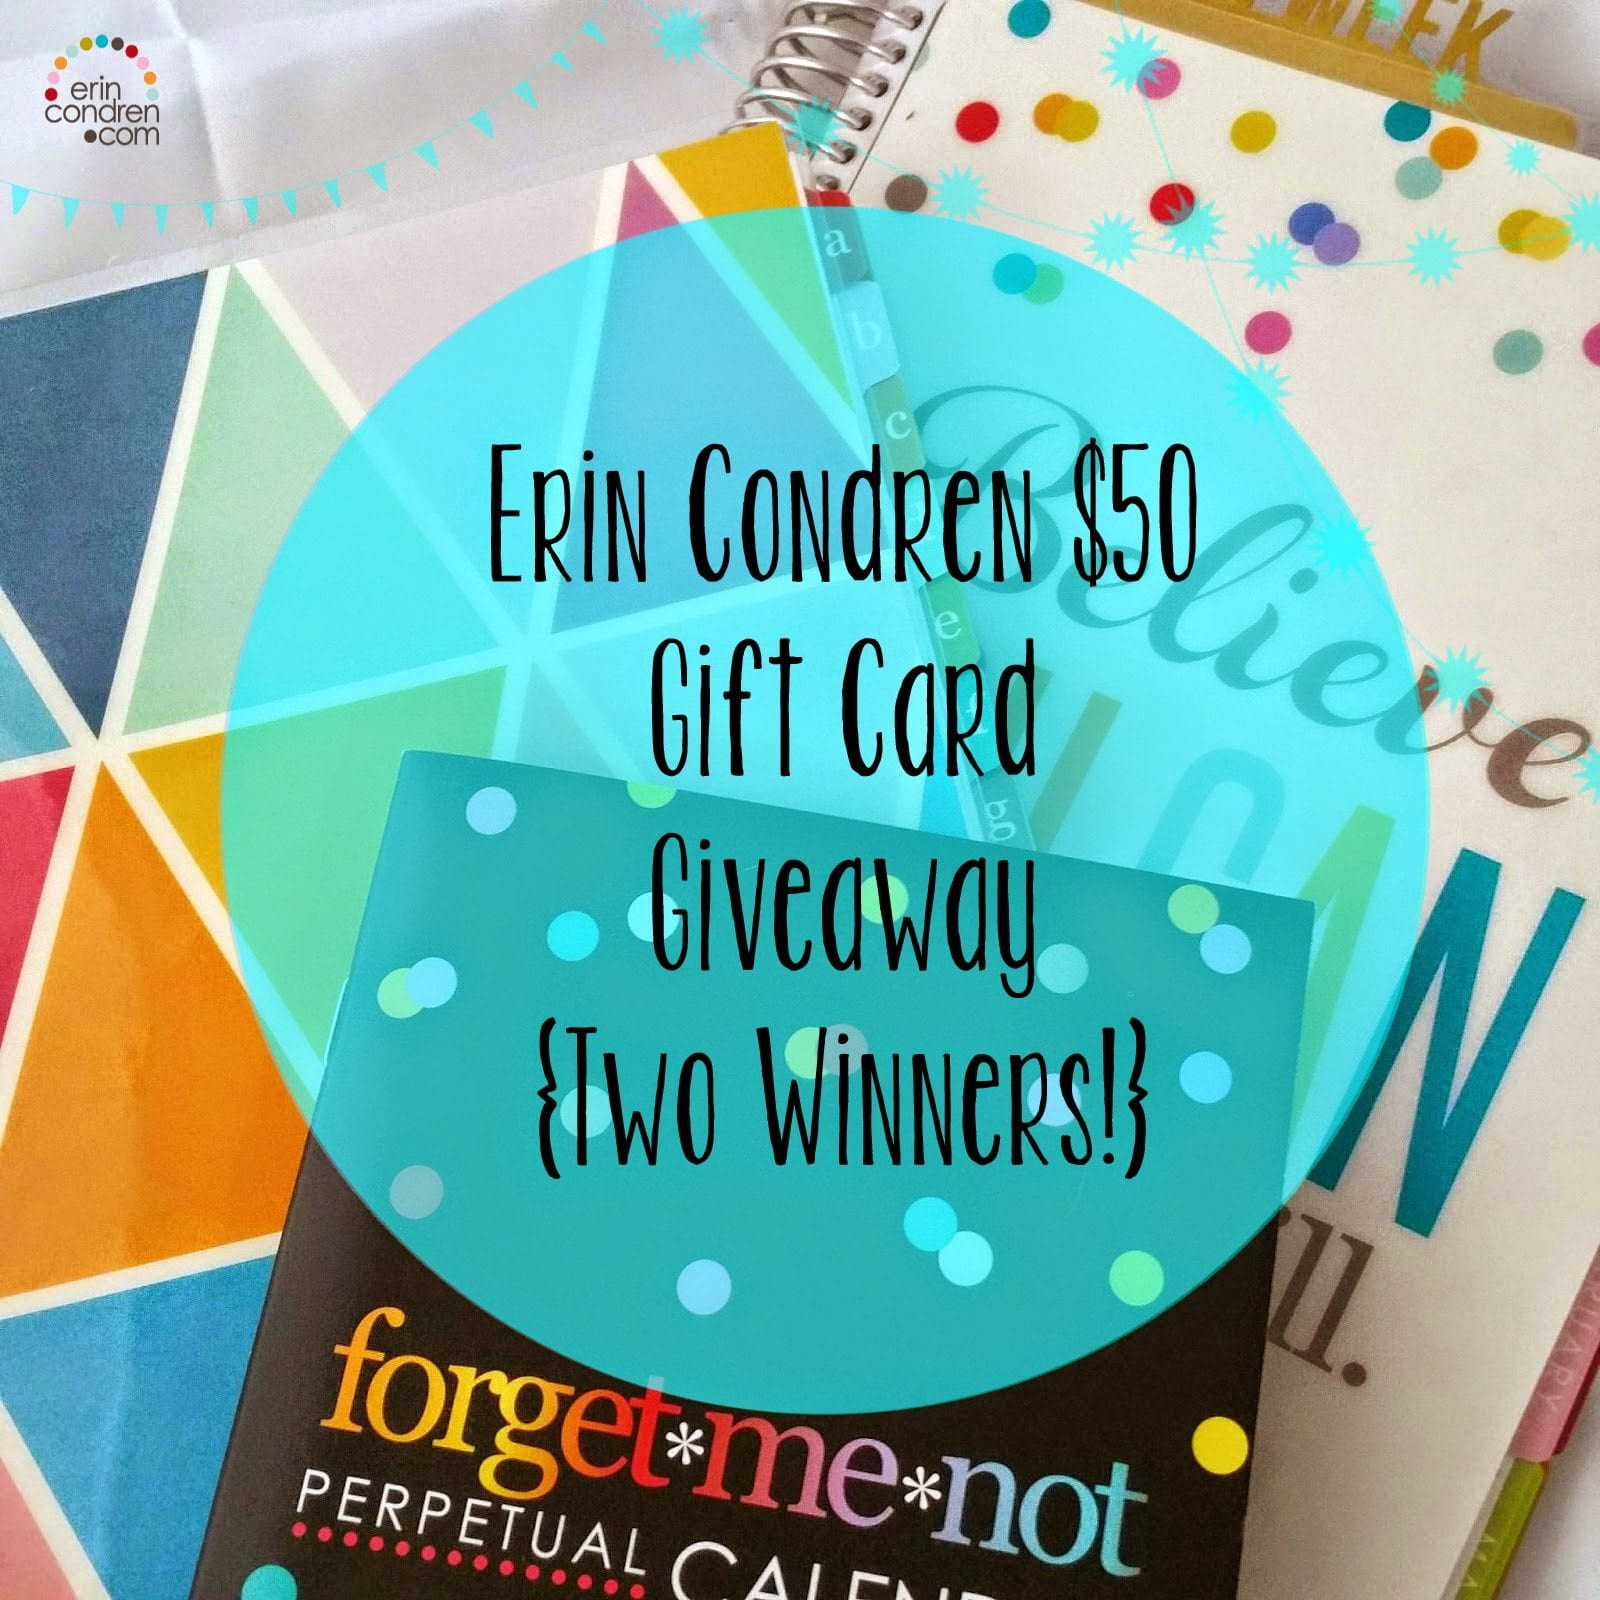 Erin Condren $50 Gift Cards Giveaway! {Two Winners} {CLOSED}